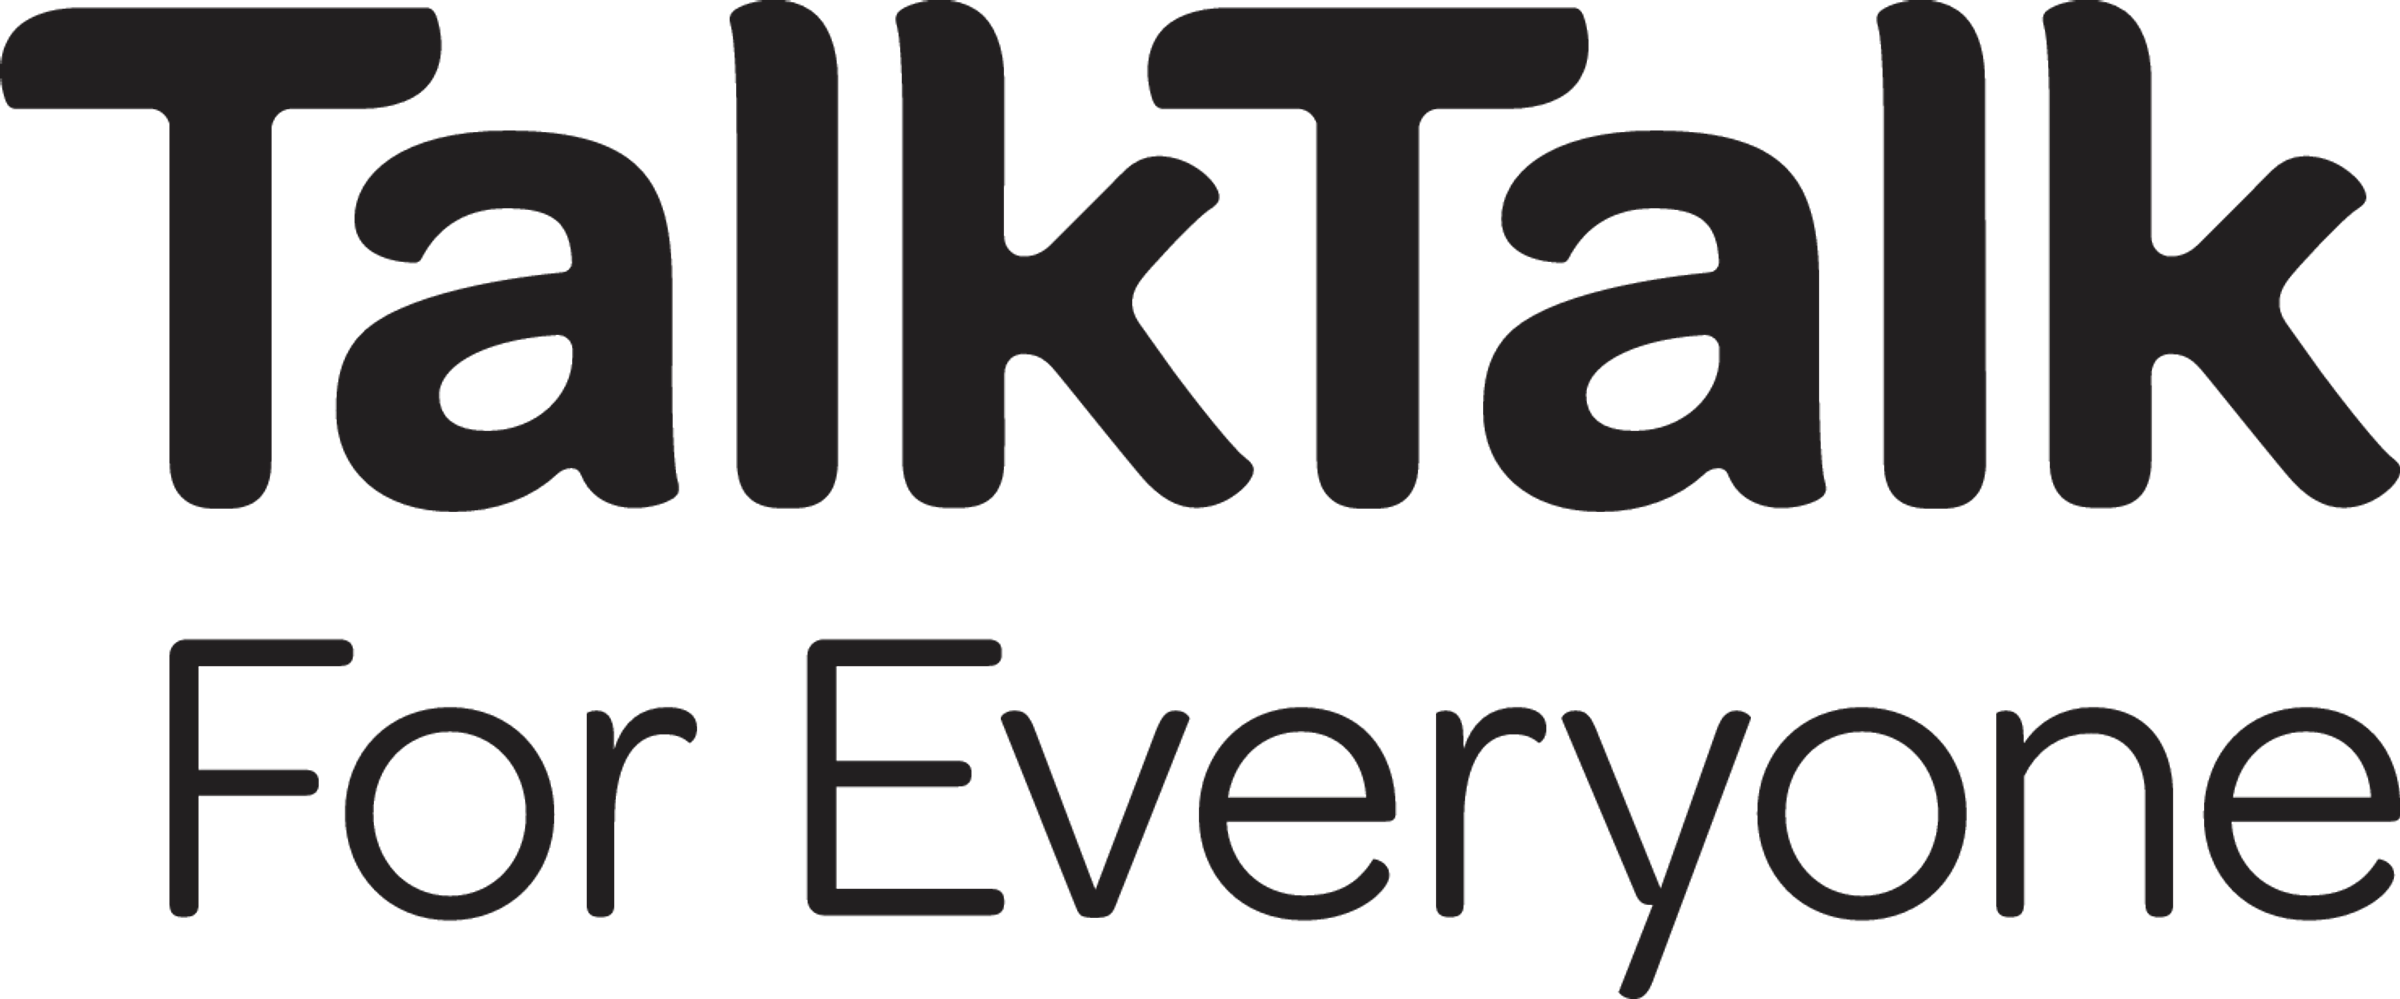 TalkTalk Phone and Broadband - Fibre 150 TV Lite